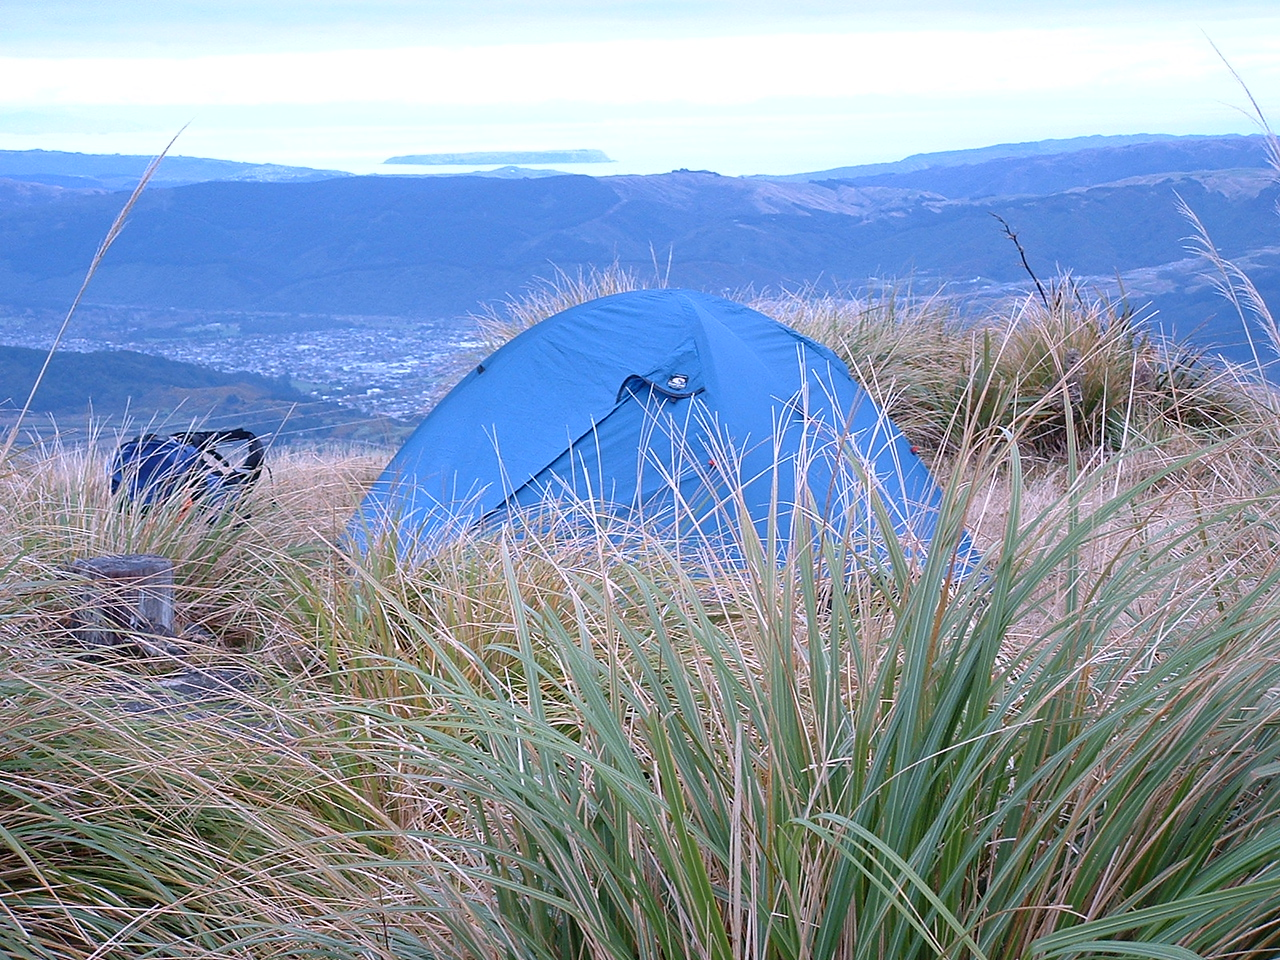 I camped at the top on the night of the 23rd May 2004, although I don't think you are really meant to. It wasn't the first time I had done that! I camped near the summit on Christmas Day one year too. That is Kapiti Island in the distance and Upper Hutt down in the valley below.